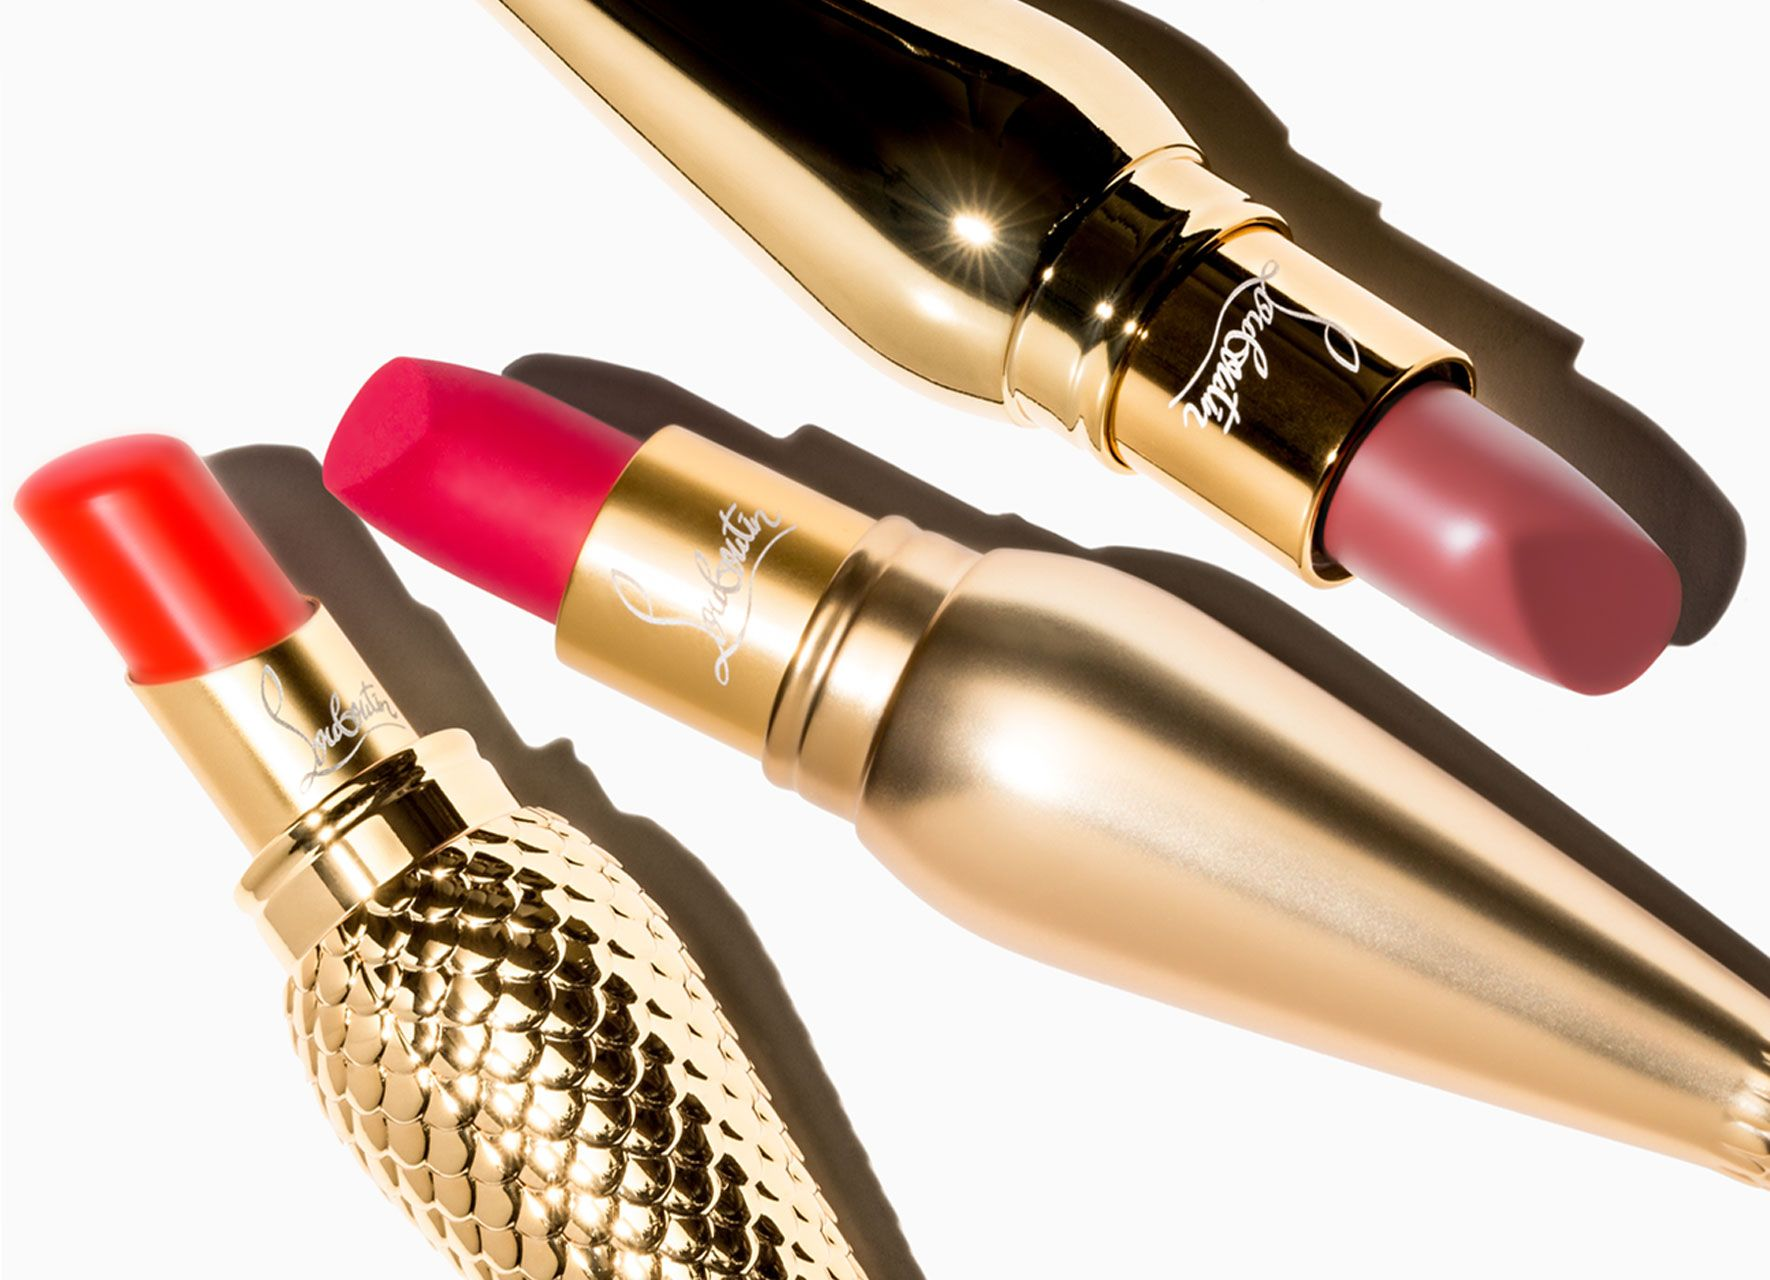 louboutin cosmetics paris